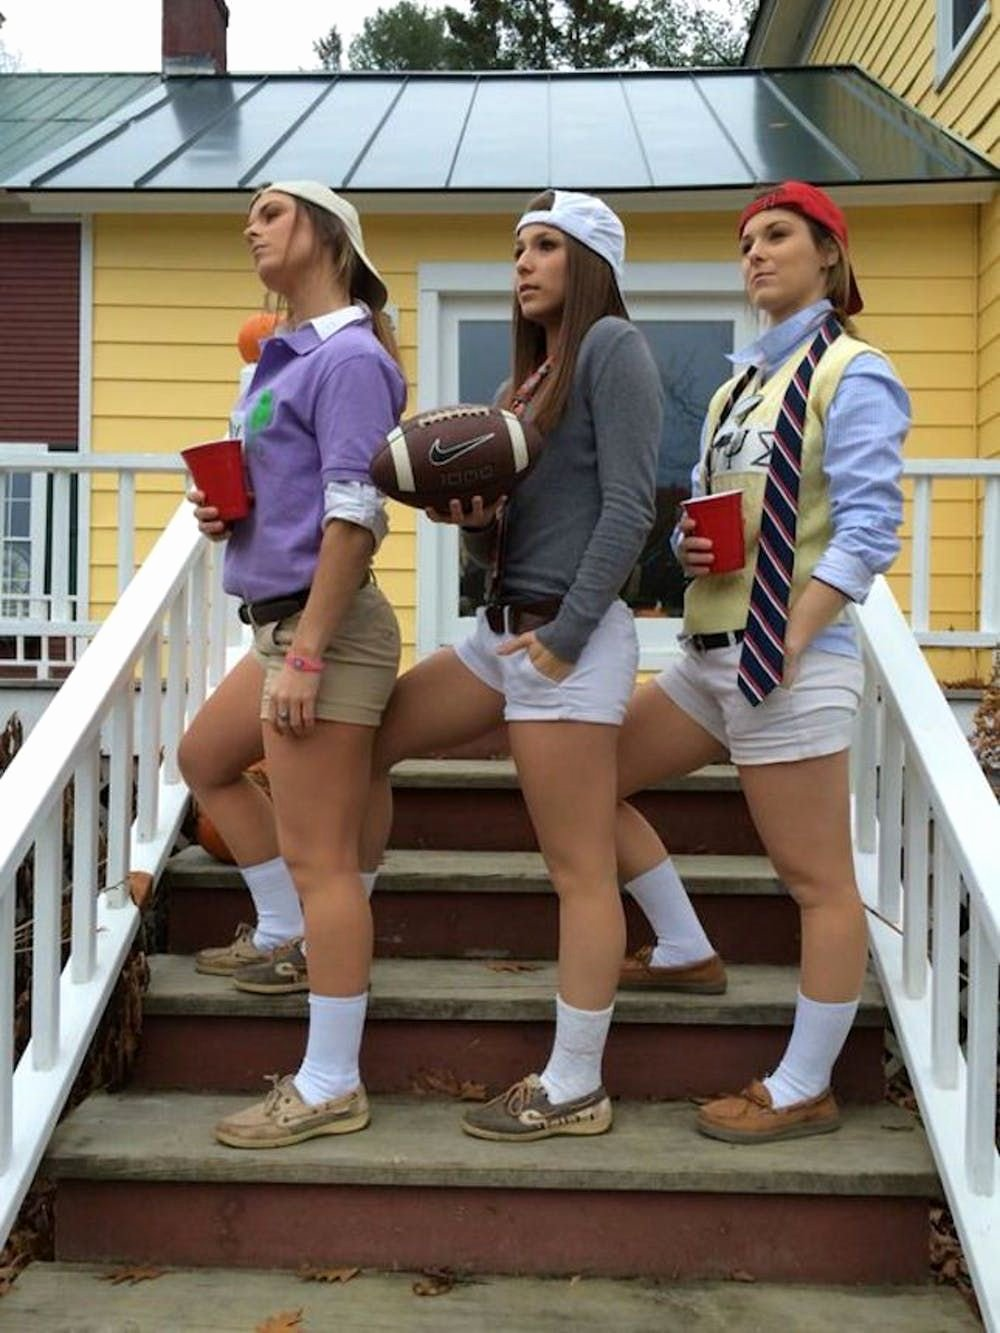 Frat Halloween Costume Ideas Fresh 85 Funny Halloween Costume Ideas that'll Have You Rofl